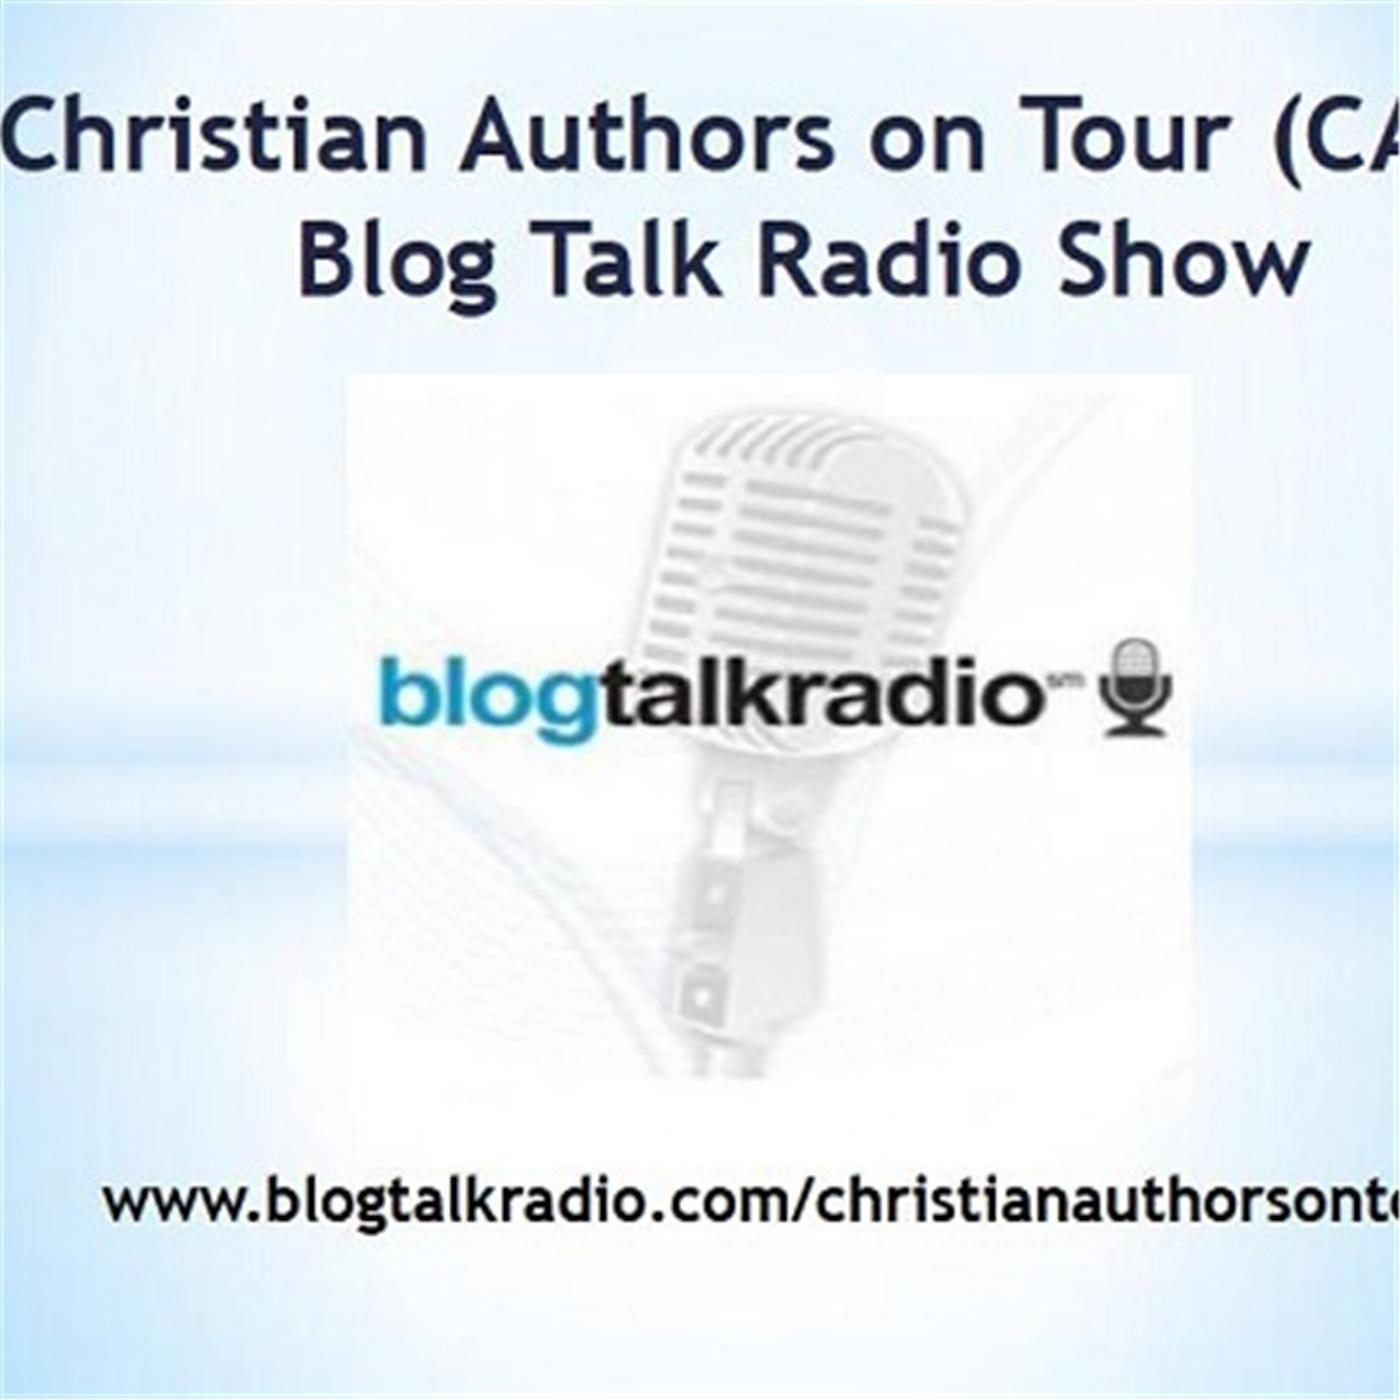 Christian Authors on Tour (CAOT) Blog Talk Radio Show